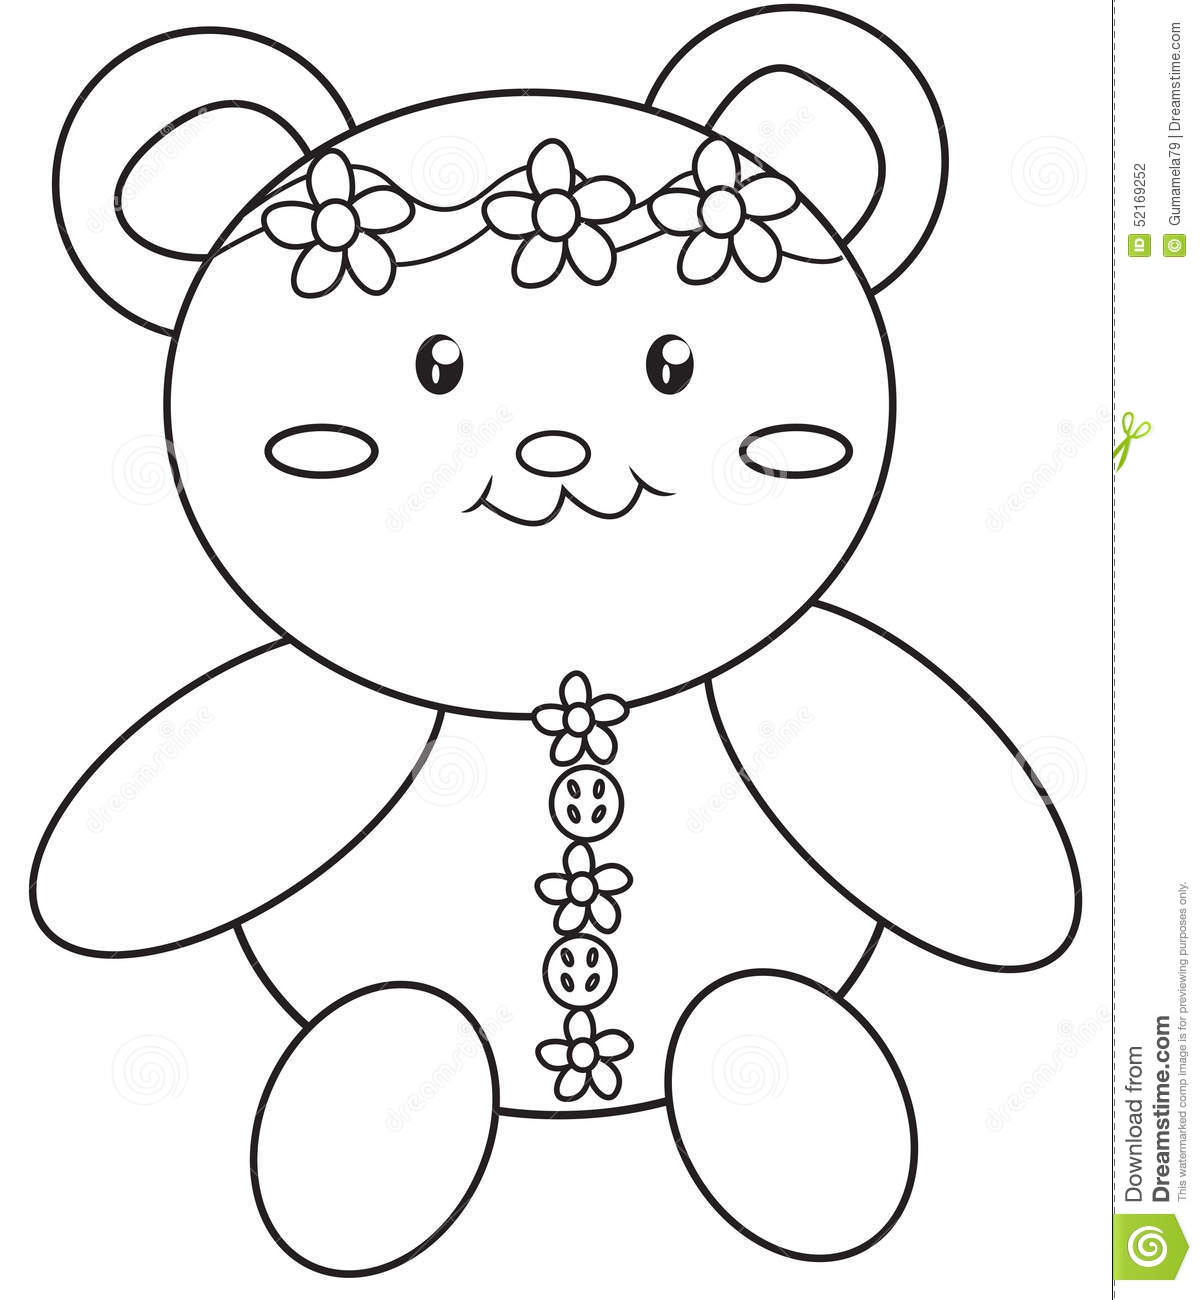 coloring page for black bear collections